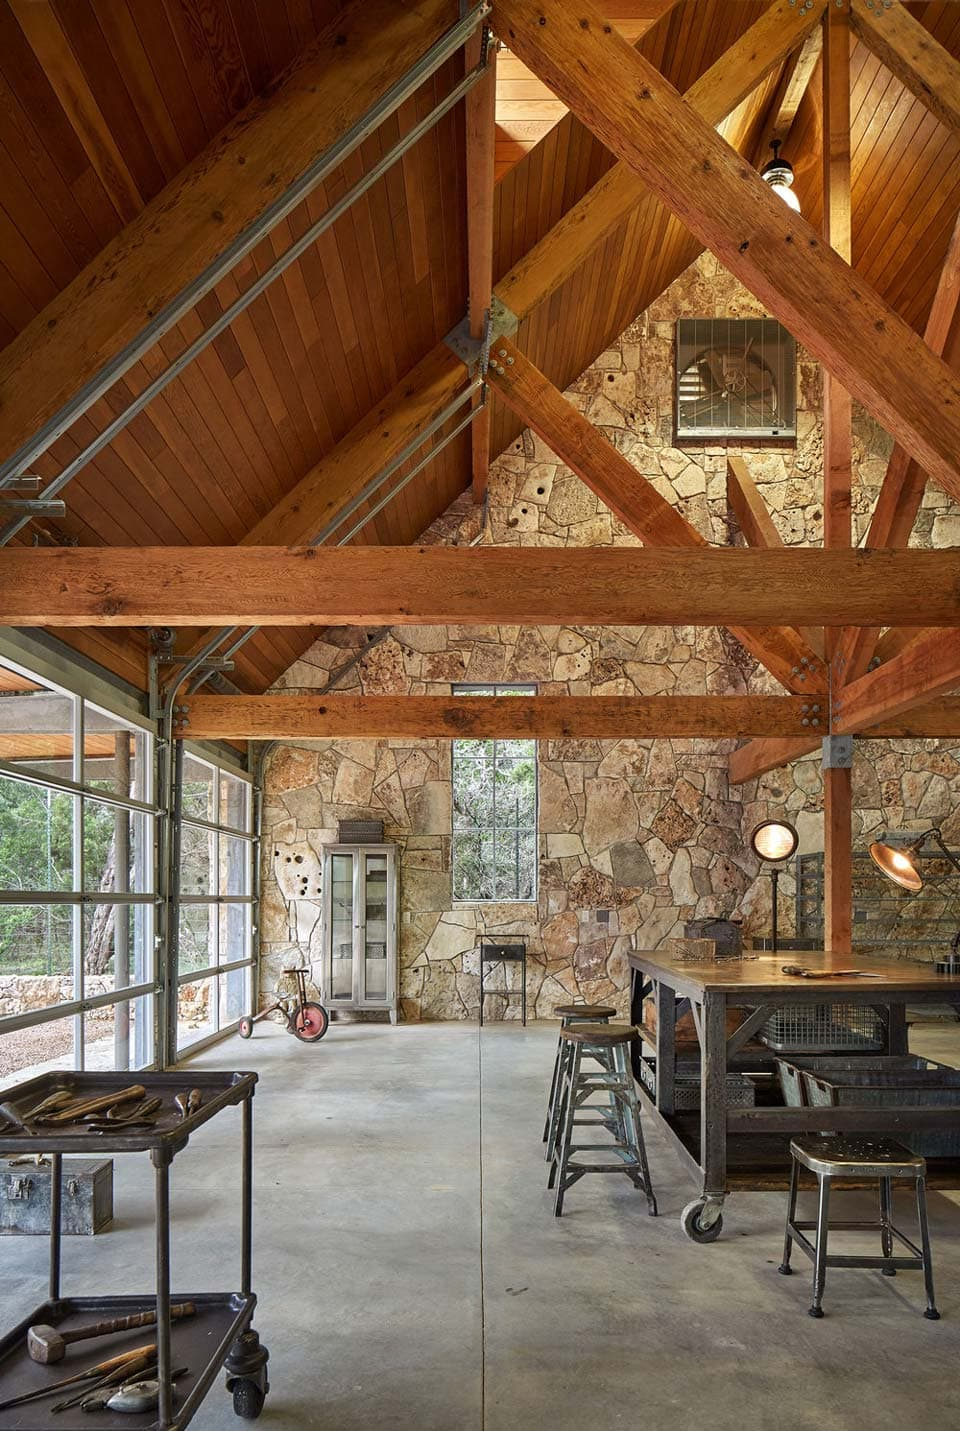 Multi-purpose Barn At Critter Creek By Furman + Keil Architects